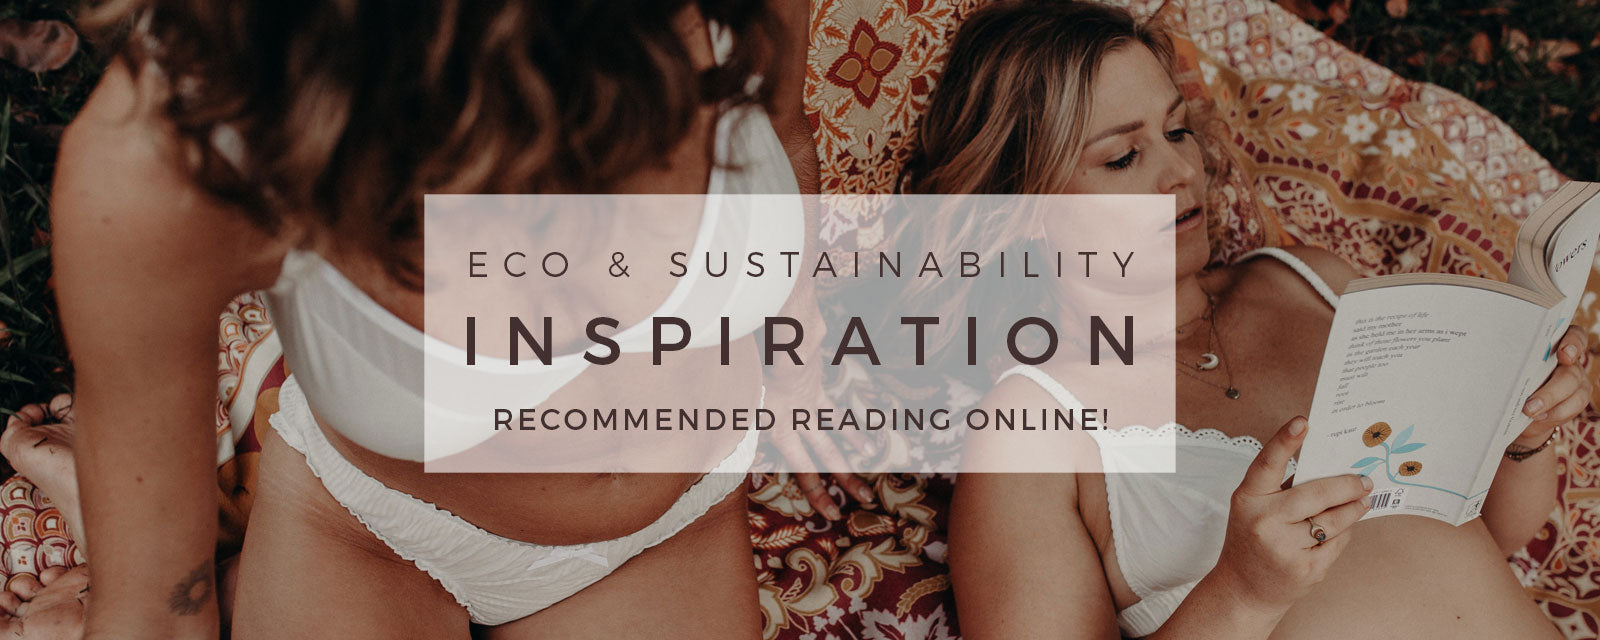 sustainable lifestyle blogs